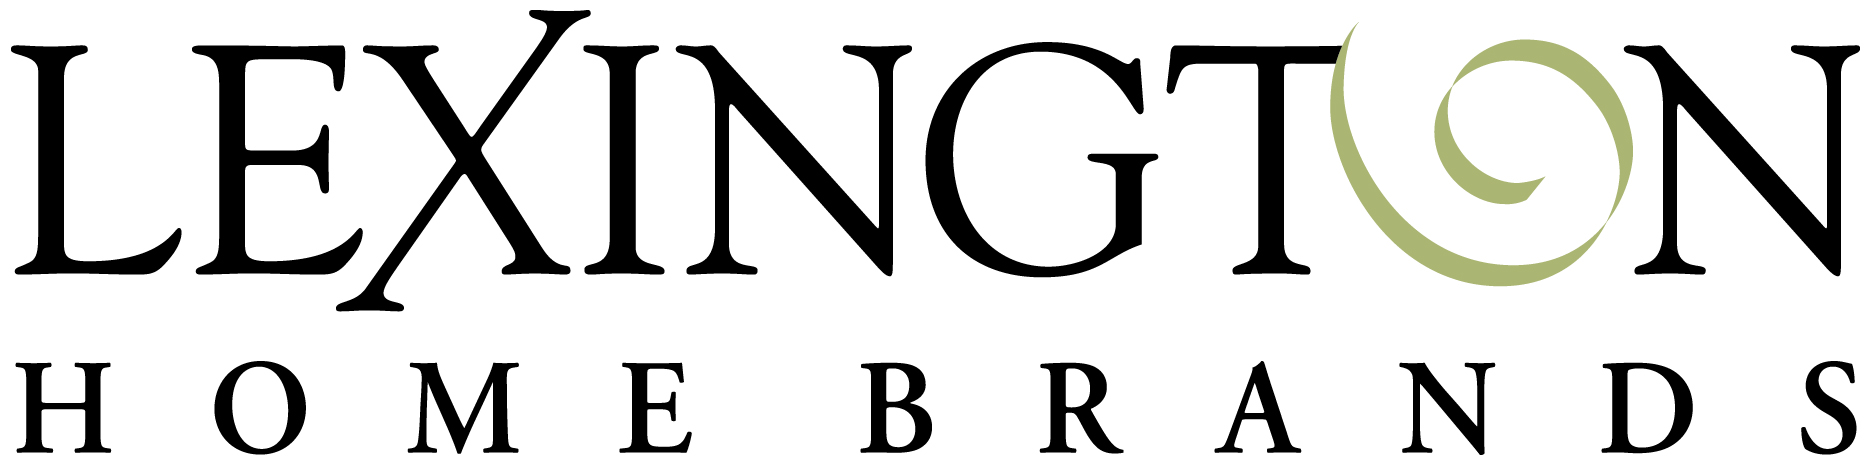 3. lexington logo